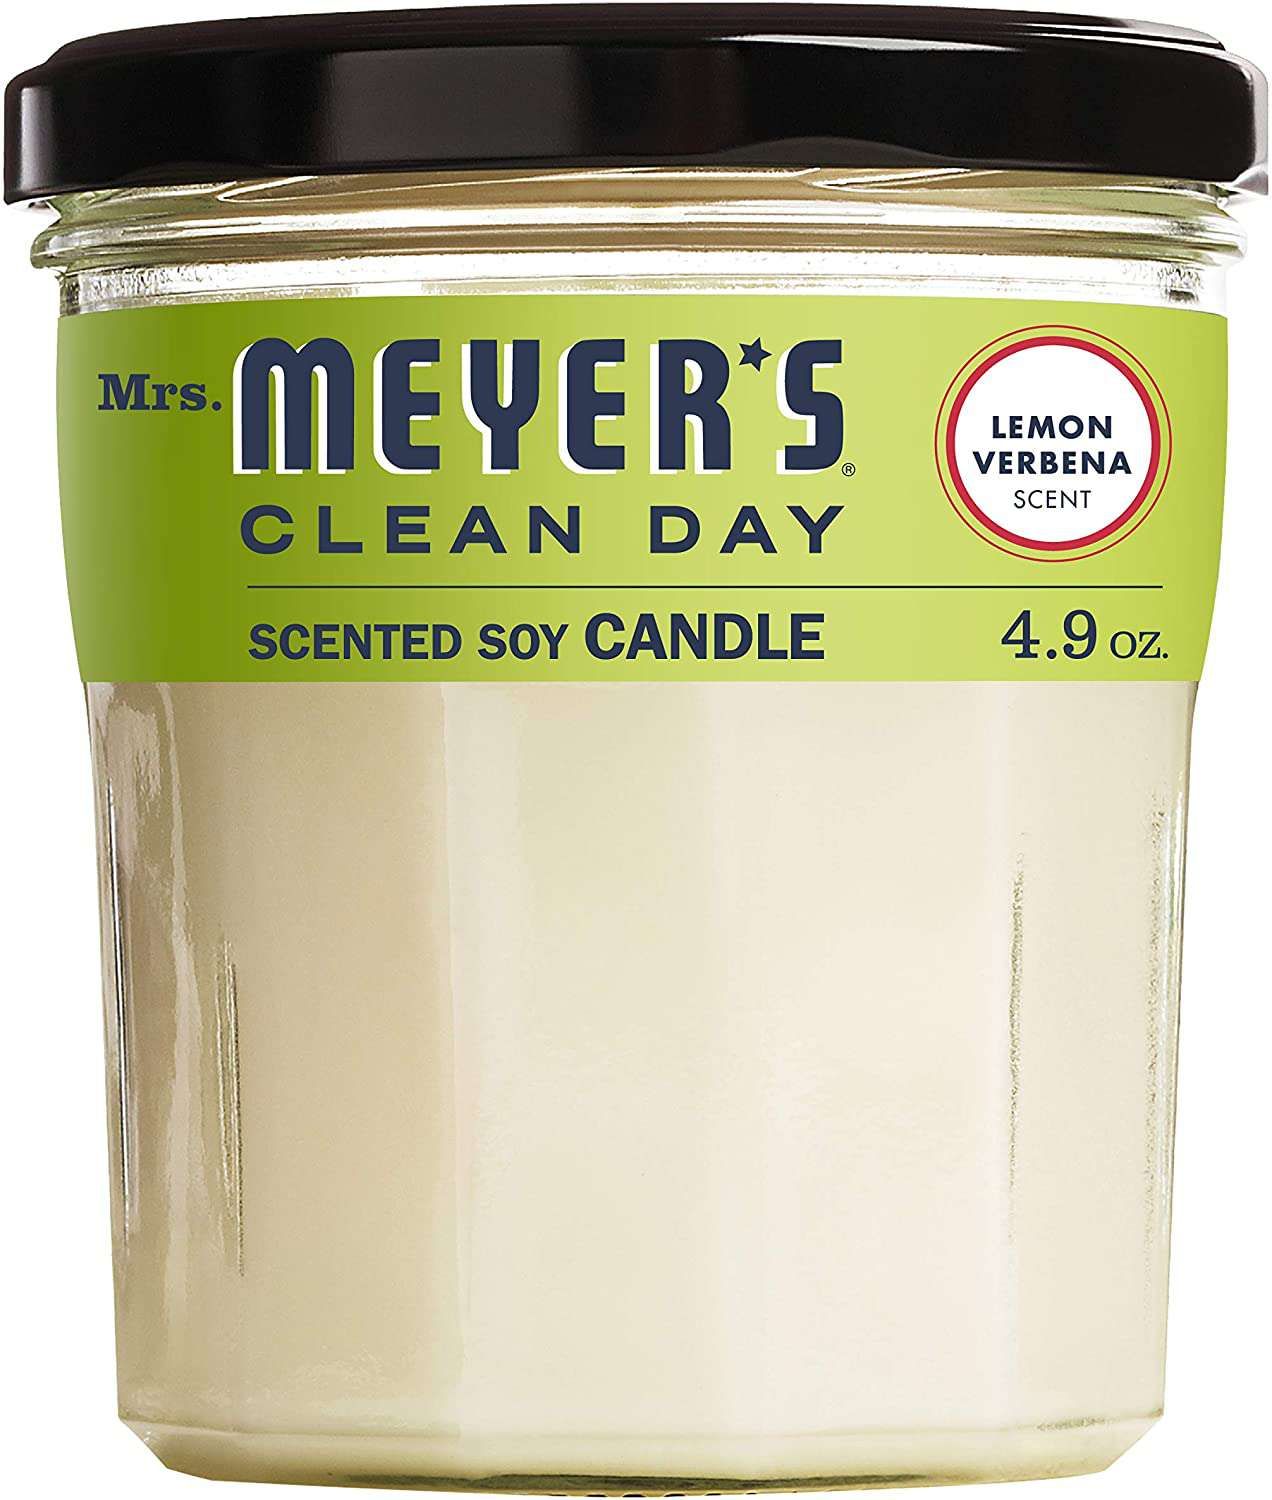 Mrs. Meyer's Candle